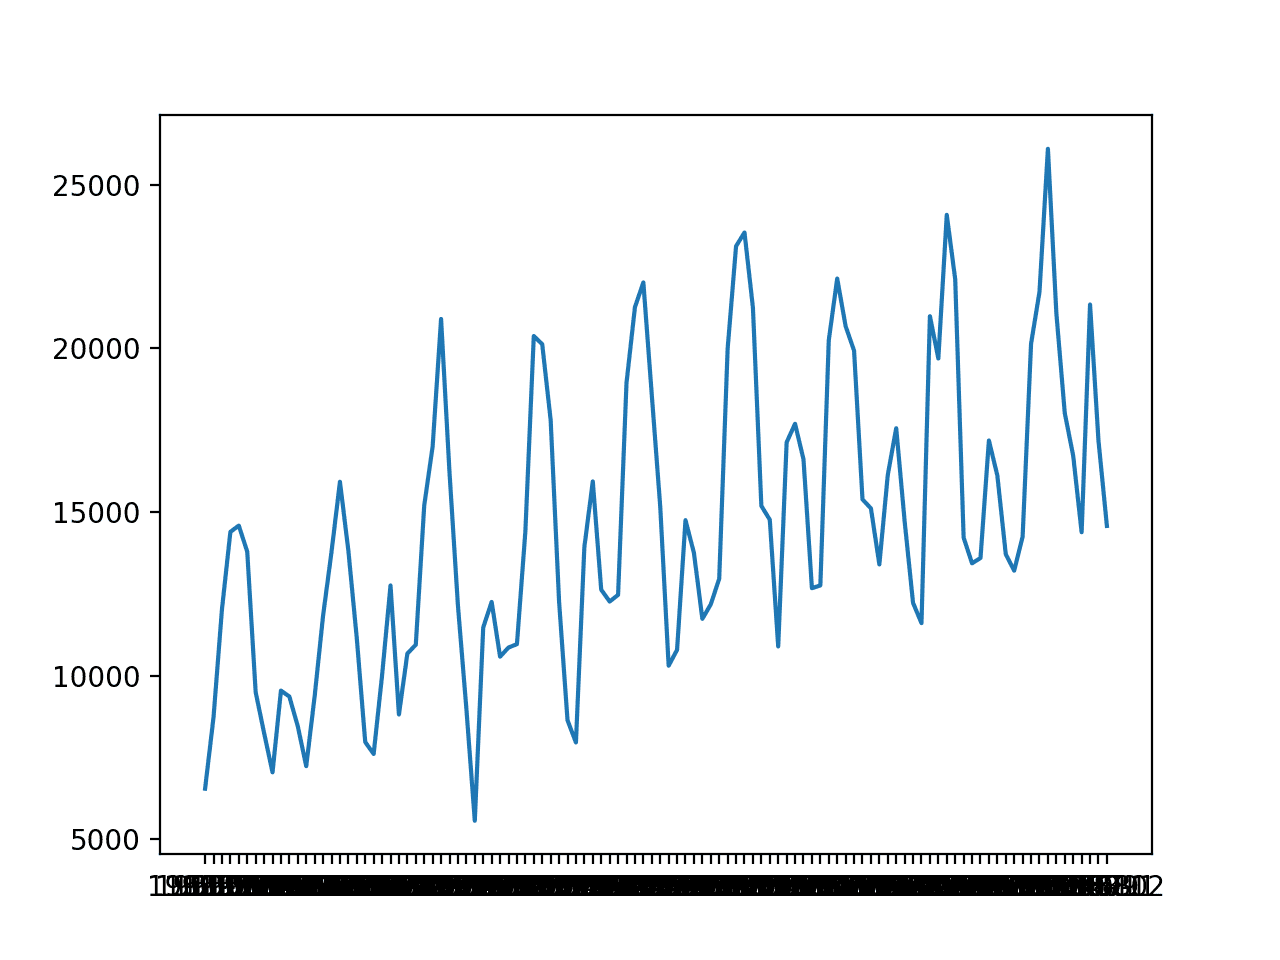 Line Plot of Monthly Car Sales  - Line Plot of Monthly Car Sales - How to Develop Deep Learning Models for Univariate Time Series Forecasting